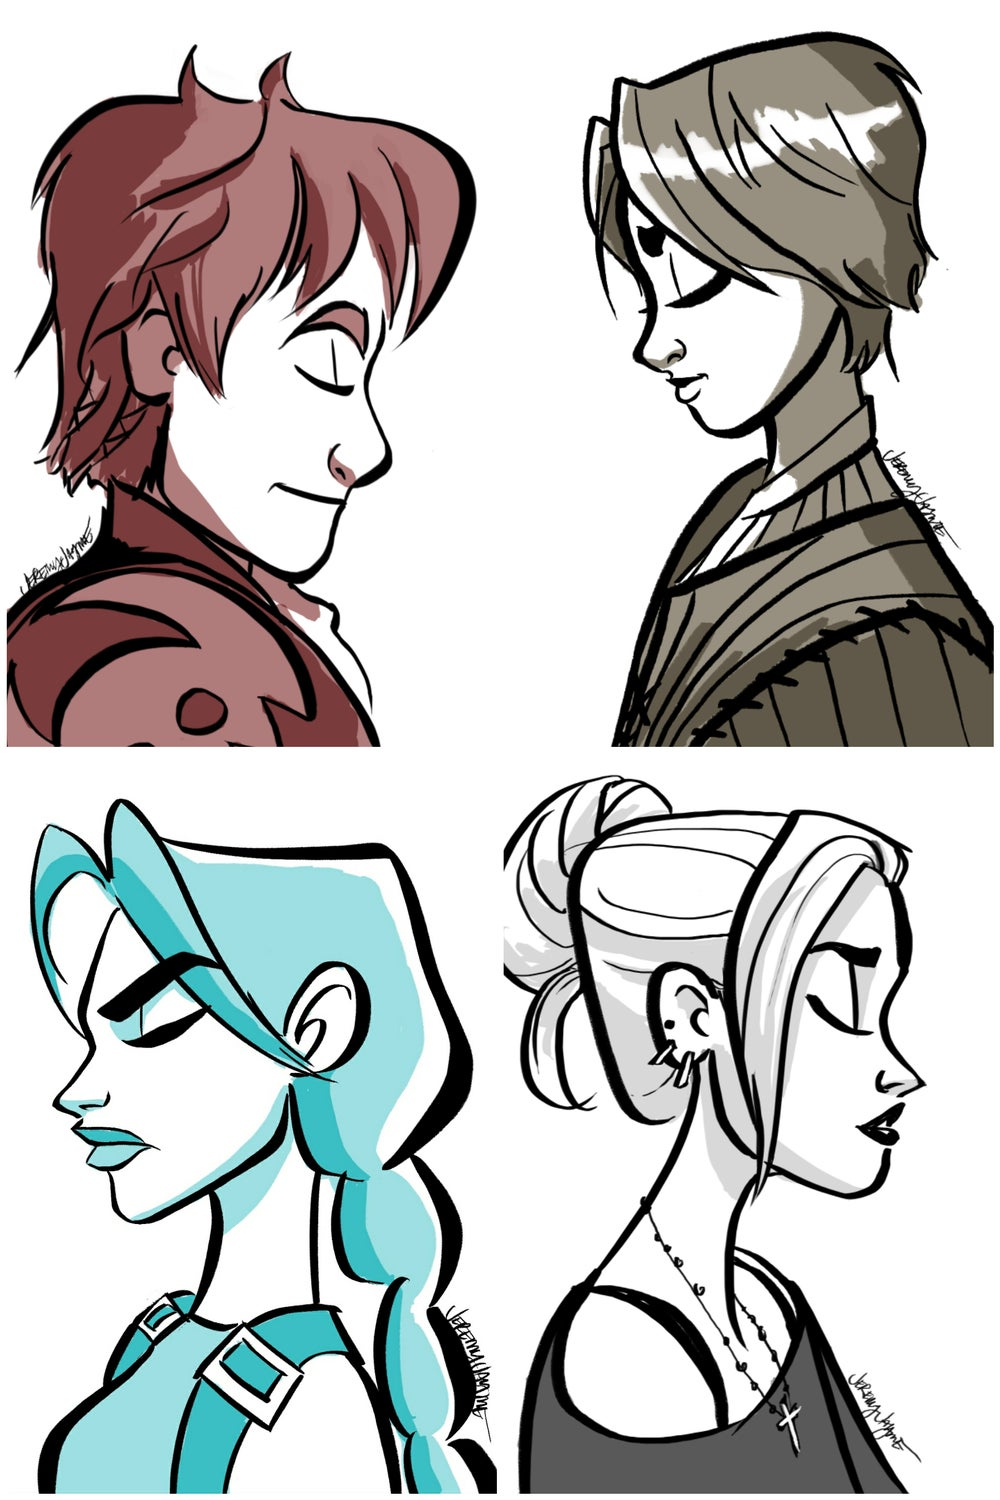 PROFILE SERIES - STAR WARS, MARVEL, OTHER